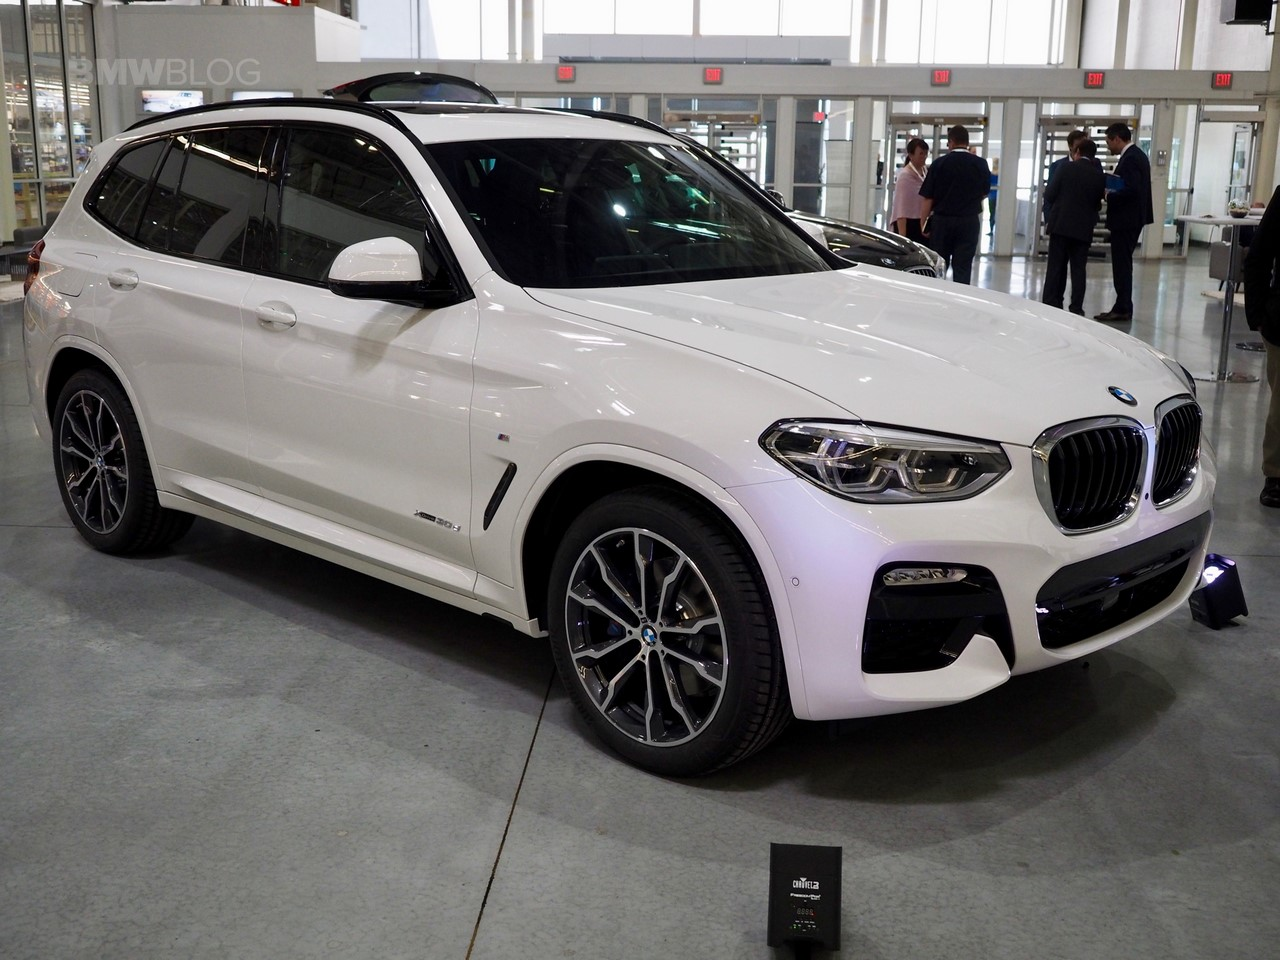 2017 BMW X3 - In 20 Live Images